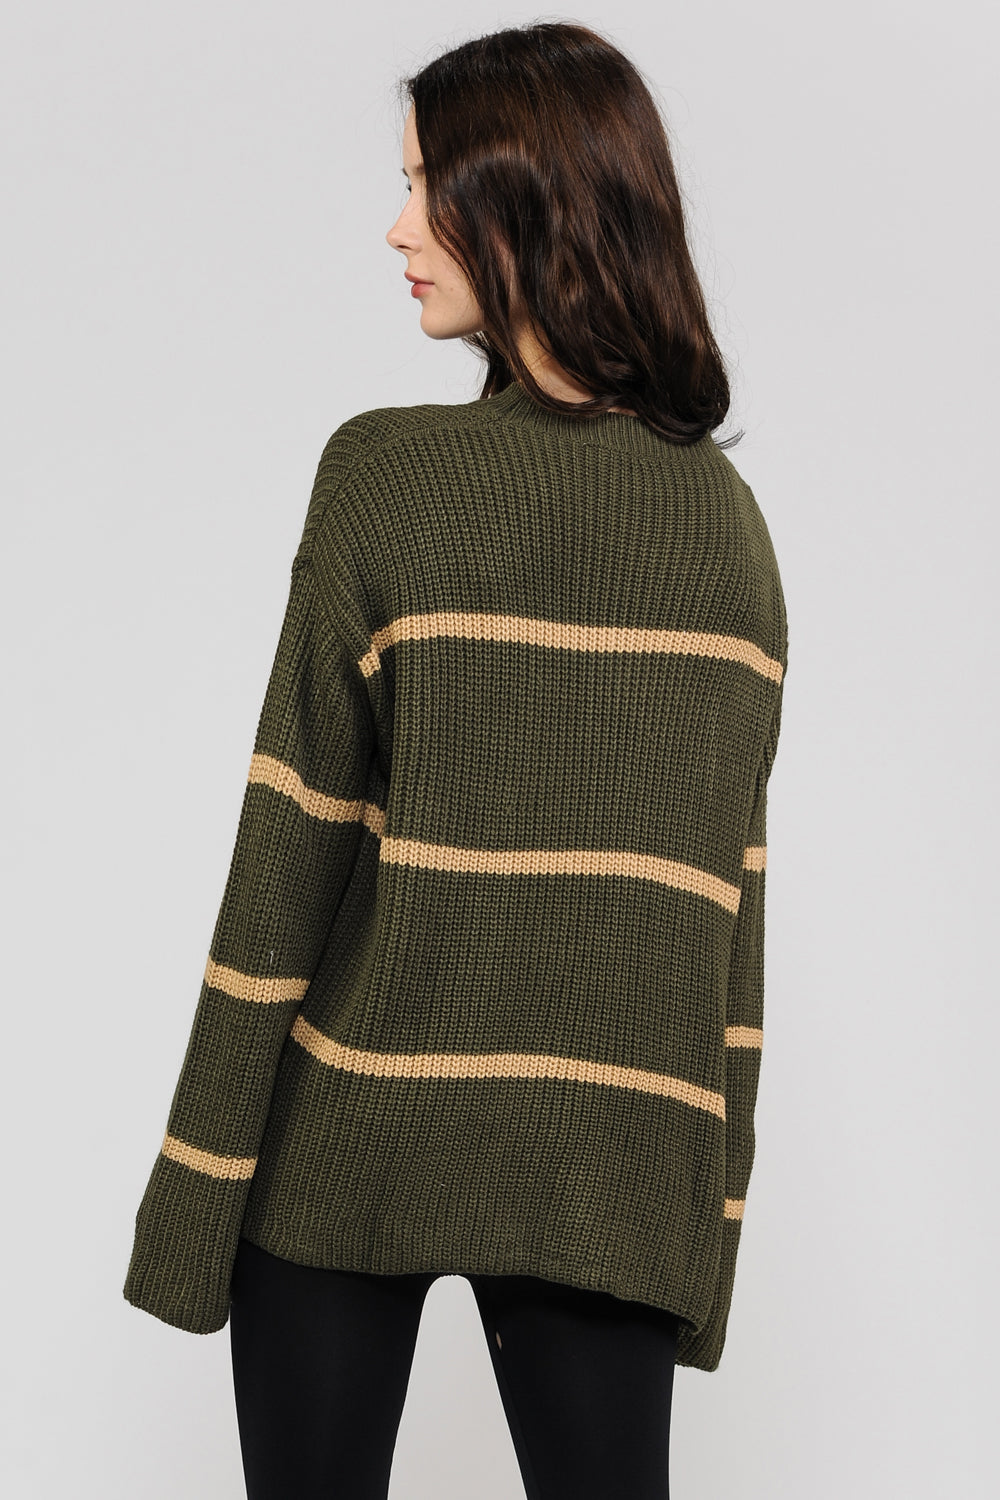 Olive Stripes Knit Sweater